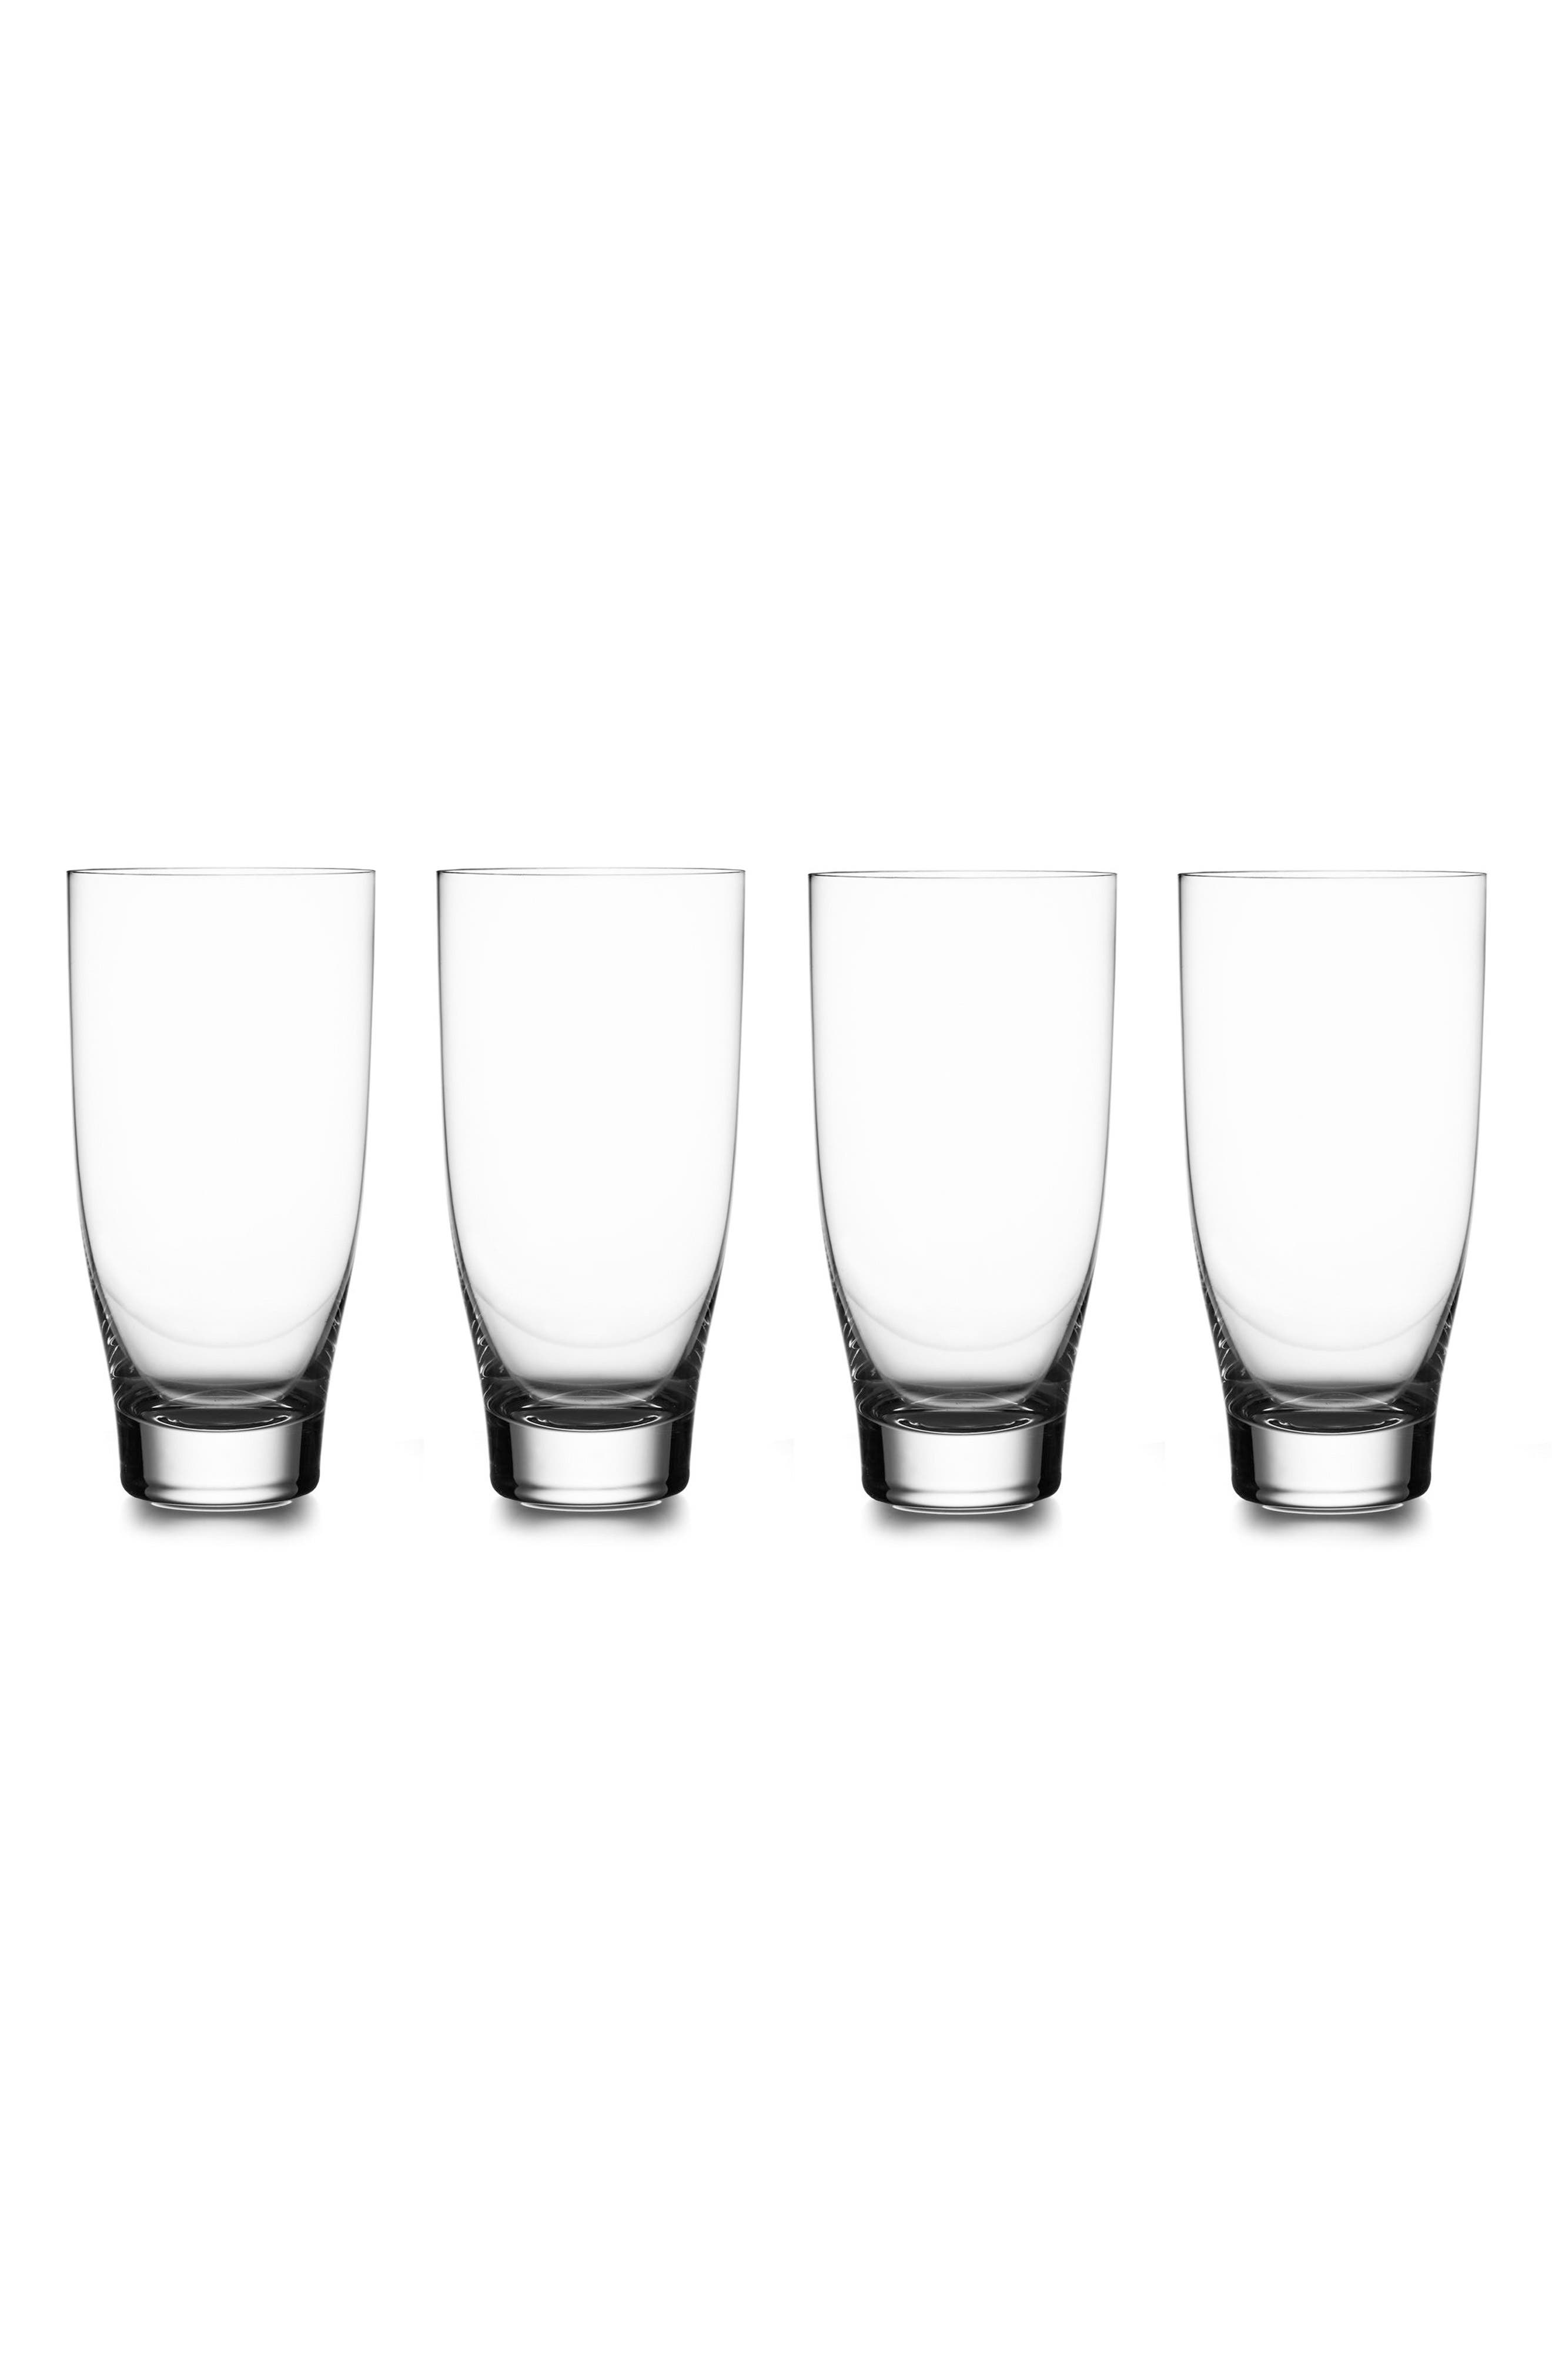 Vie Set of 4 Highball Glasses,                         Main,                         color, Clear